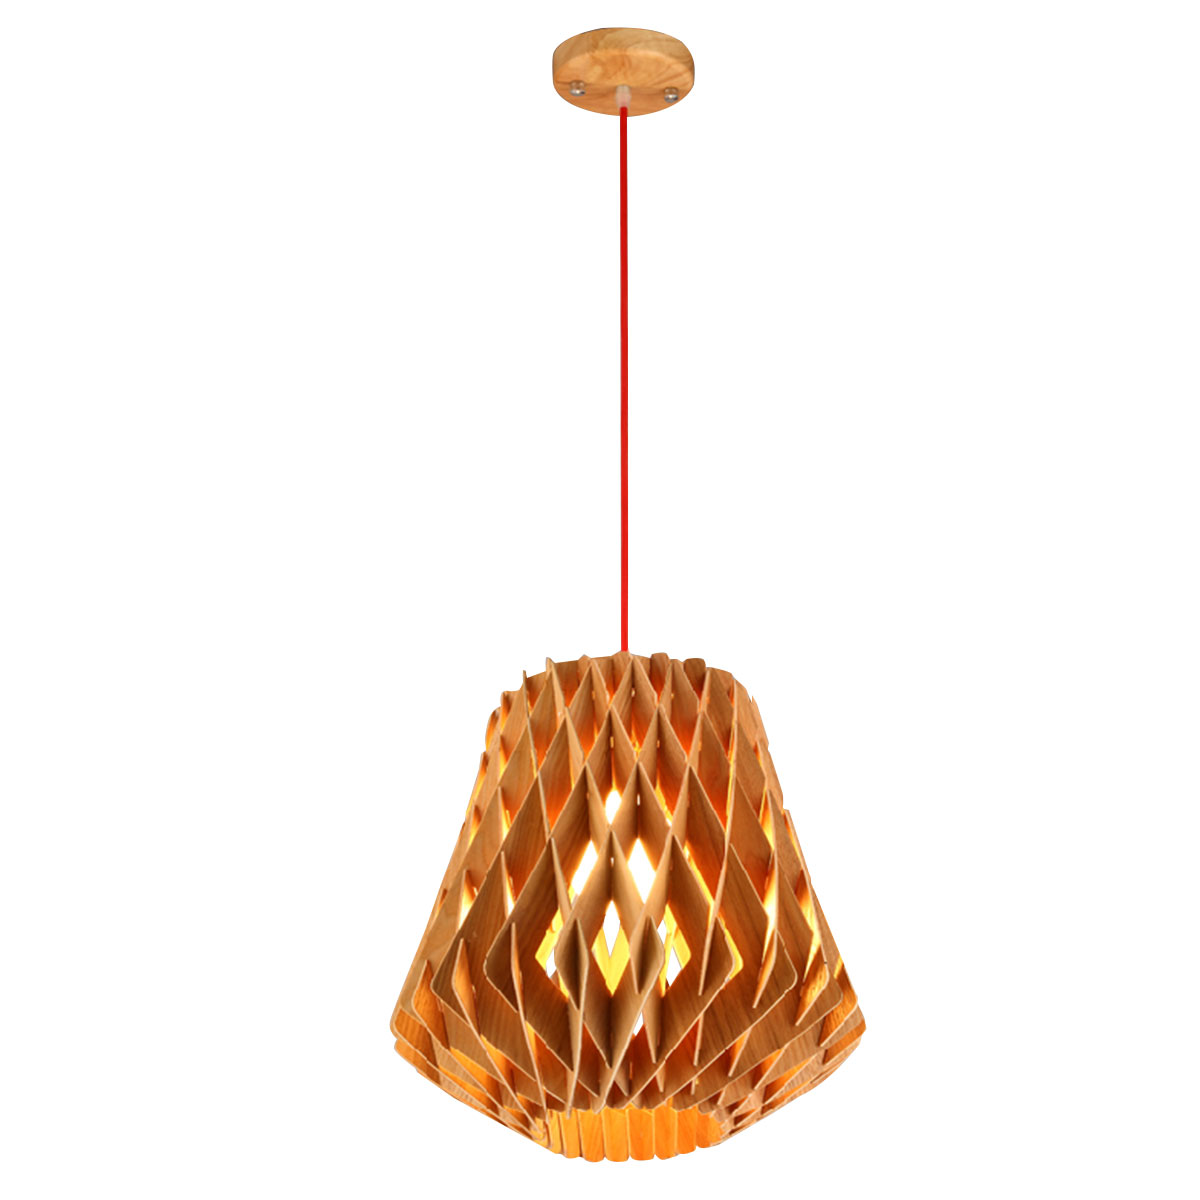 Wooden Pendant Lighting Modern Japan Style Wood Light Loft Lamp For Dining Room